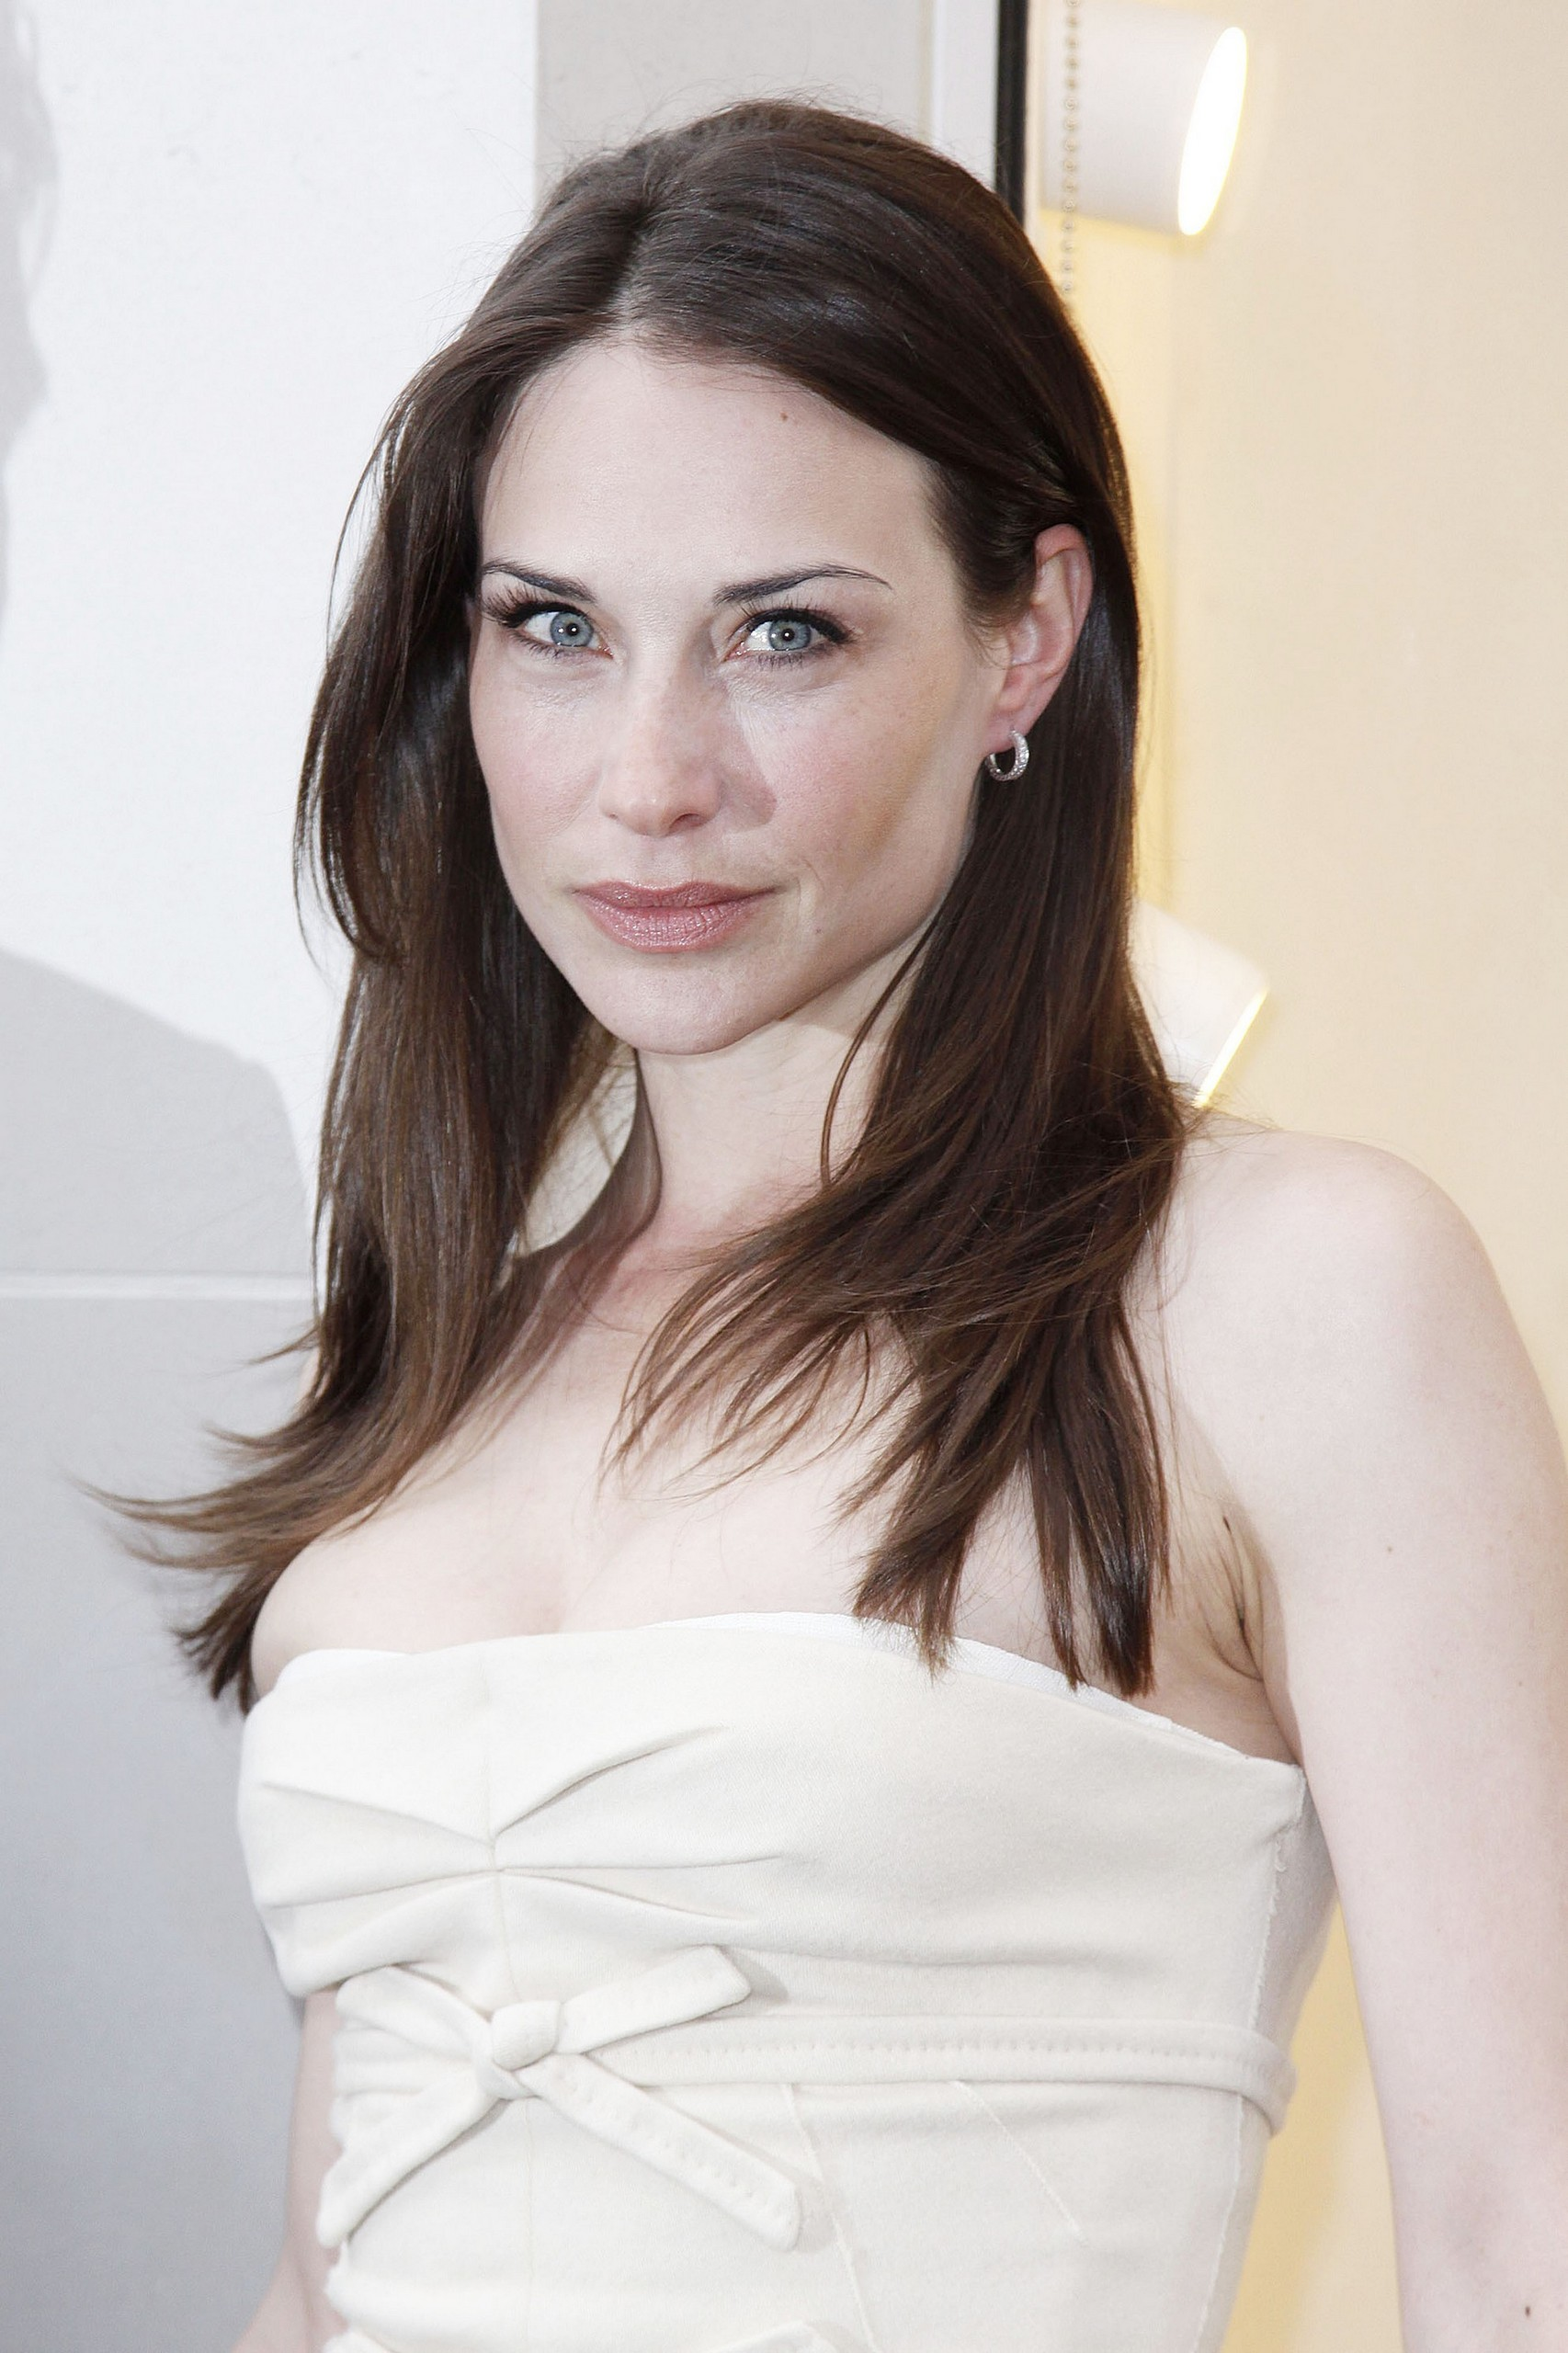 Claire Forlani nude (41 photos), Tits, Hot, Instagram, legs 2019